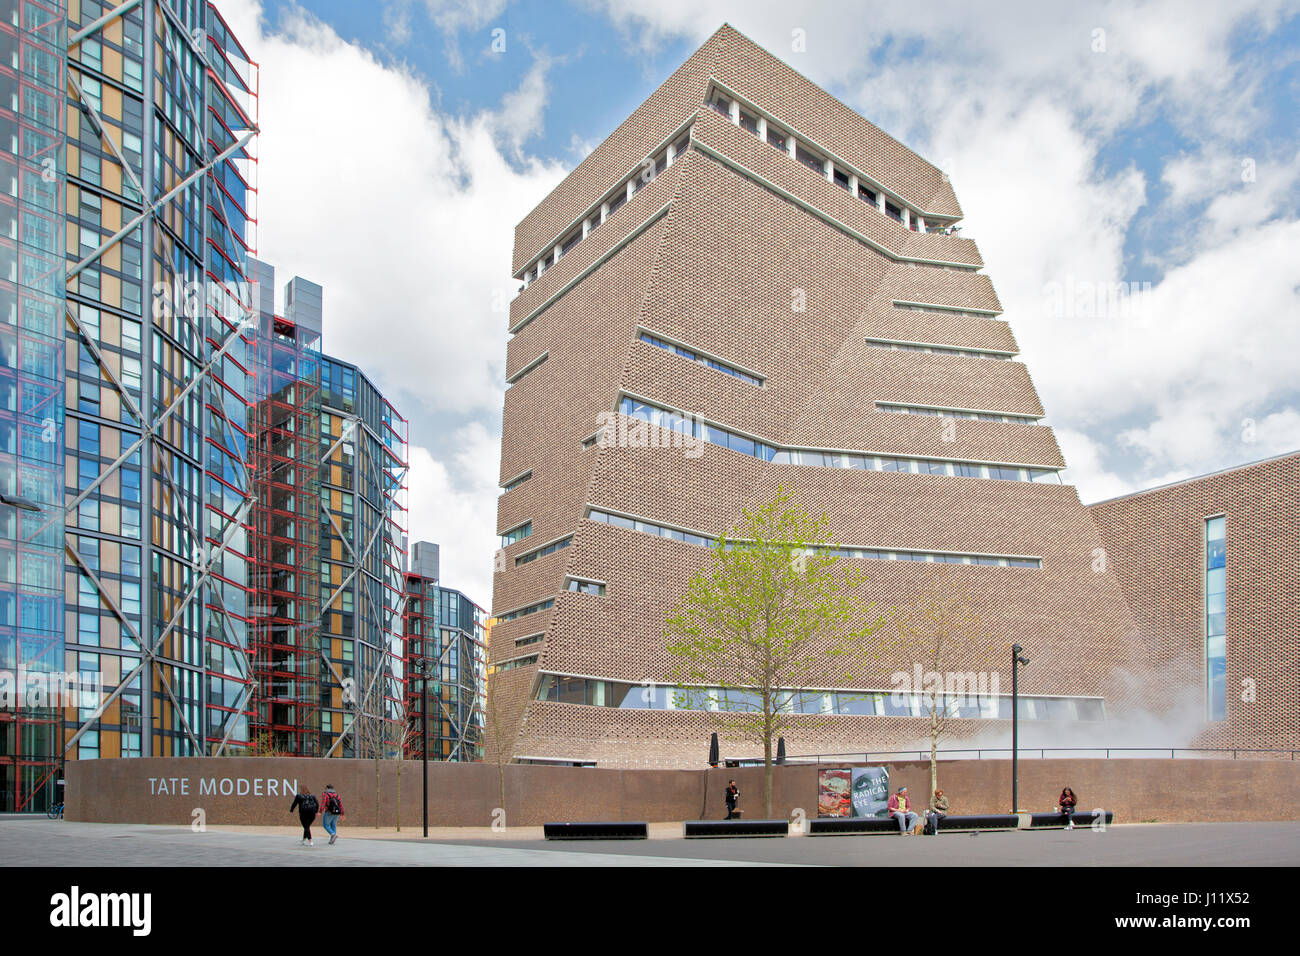 Exterior of Tate Modern Switch House by Herzog & de Meuron viewed from outside, located on Bankside, London, - Stock Image